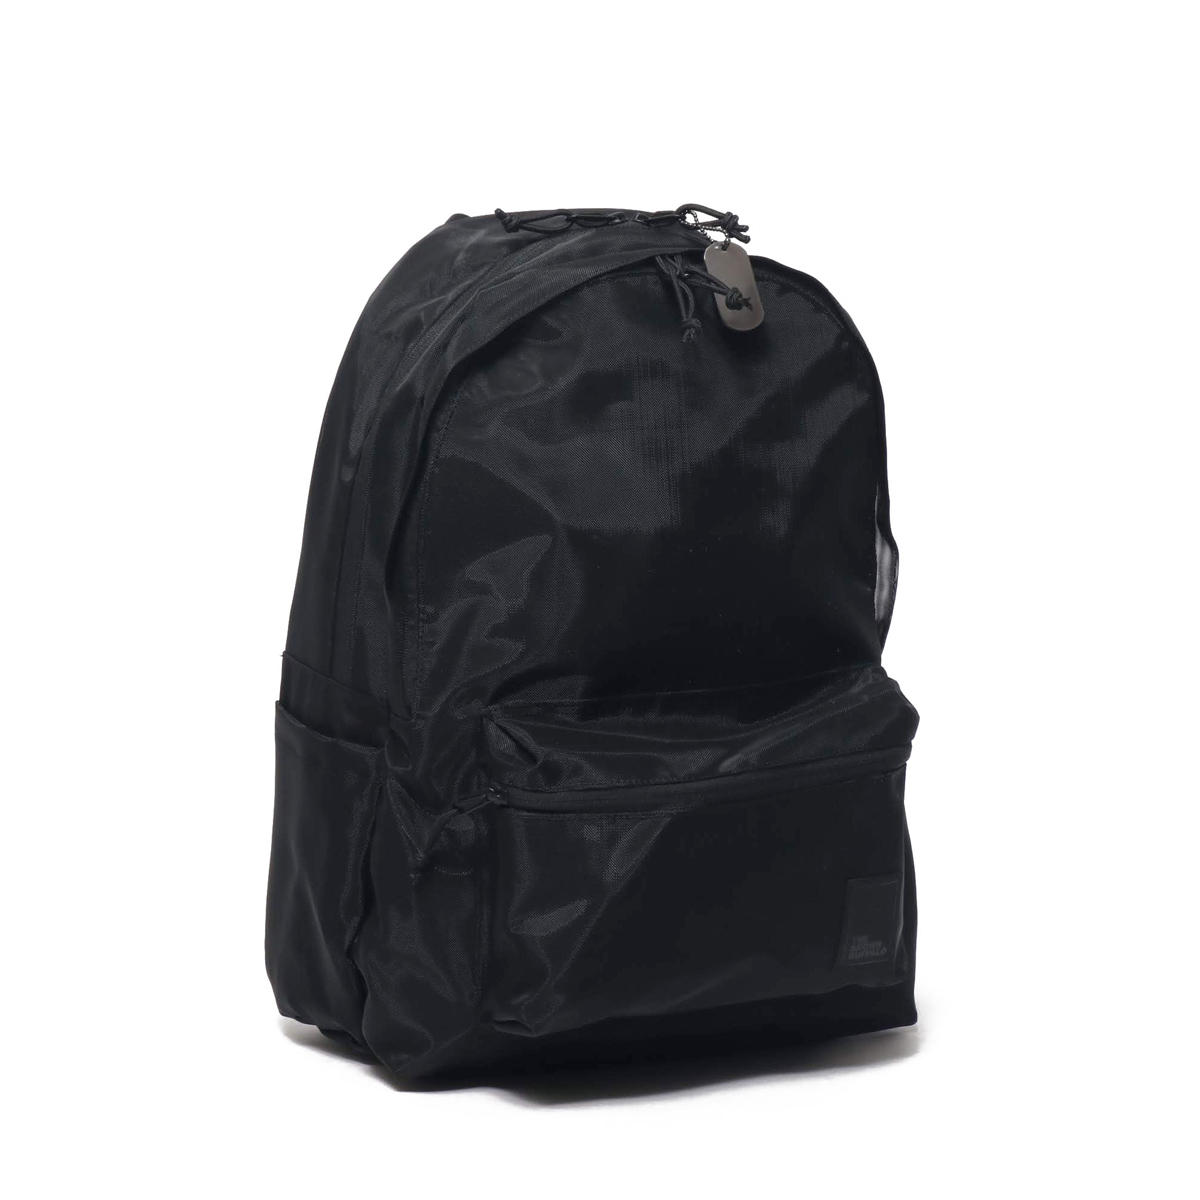 THE BROWN BUFFALO STANDARD ISSUE BACKPACK(ザ ブラウン バッファロー スタンダードイシュ―バックパック)BLACK【メンズ レディース バックパック】19FA-I